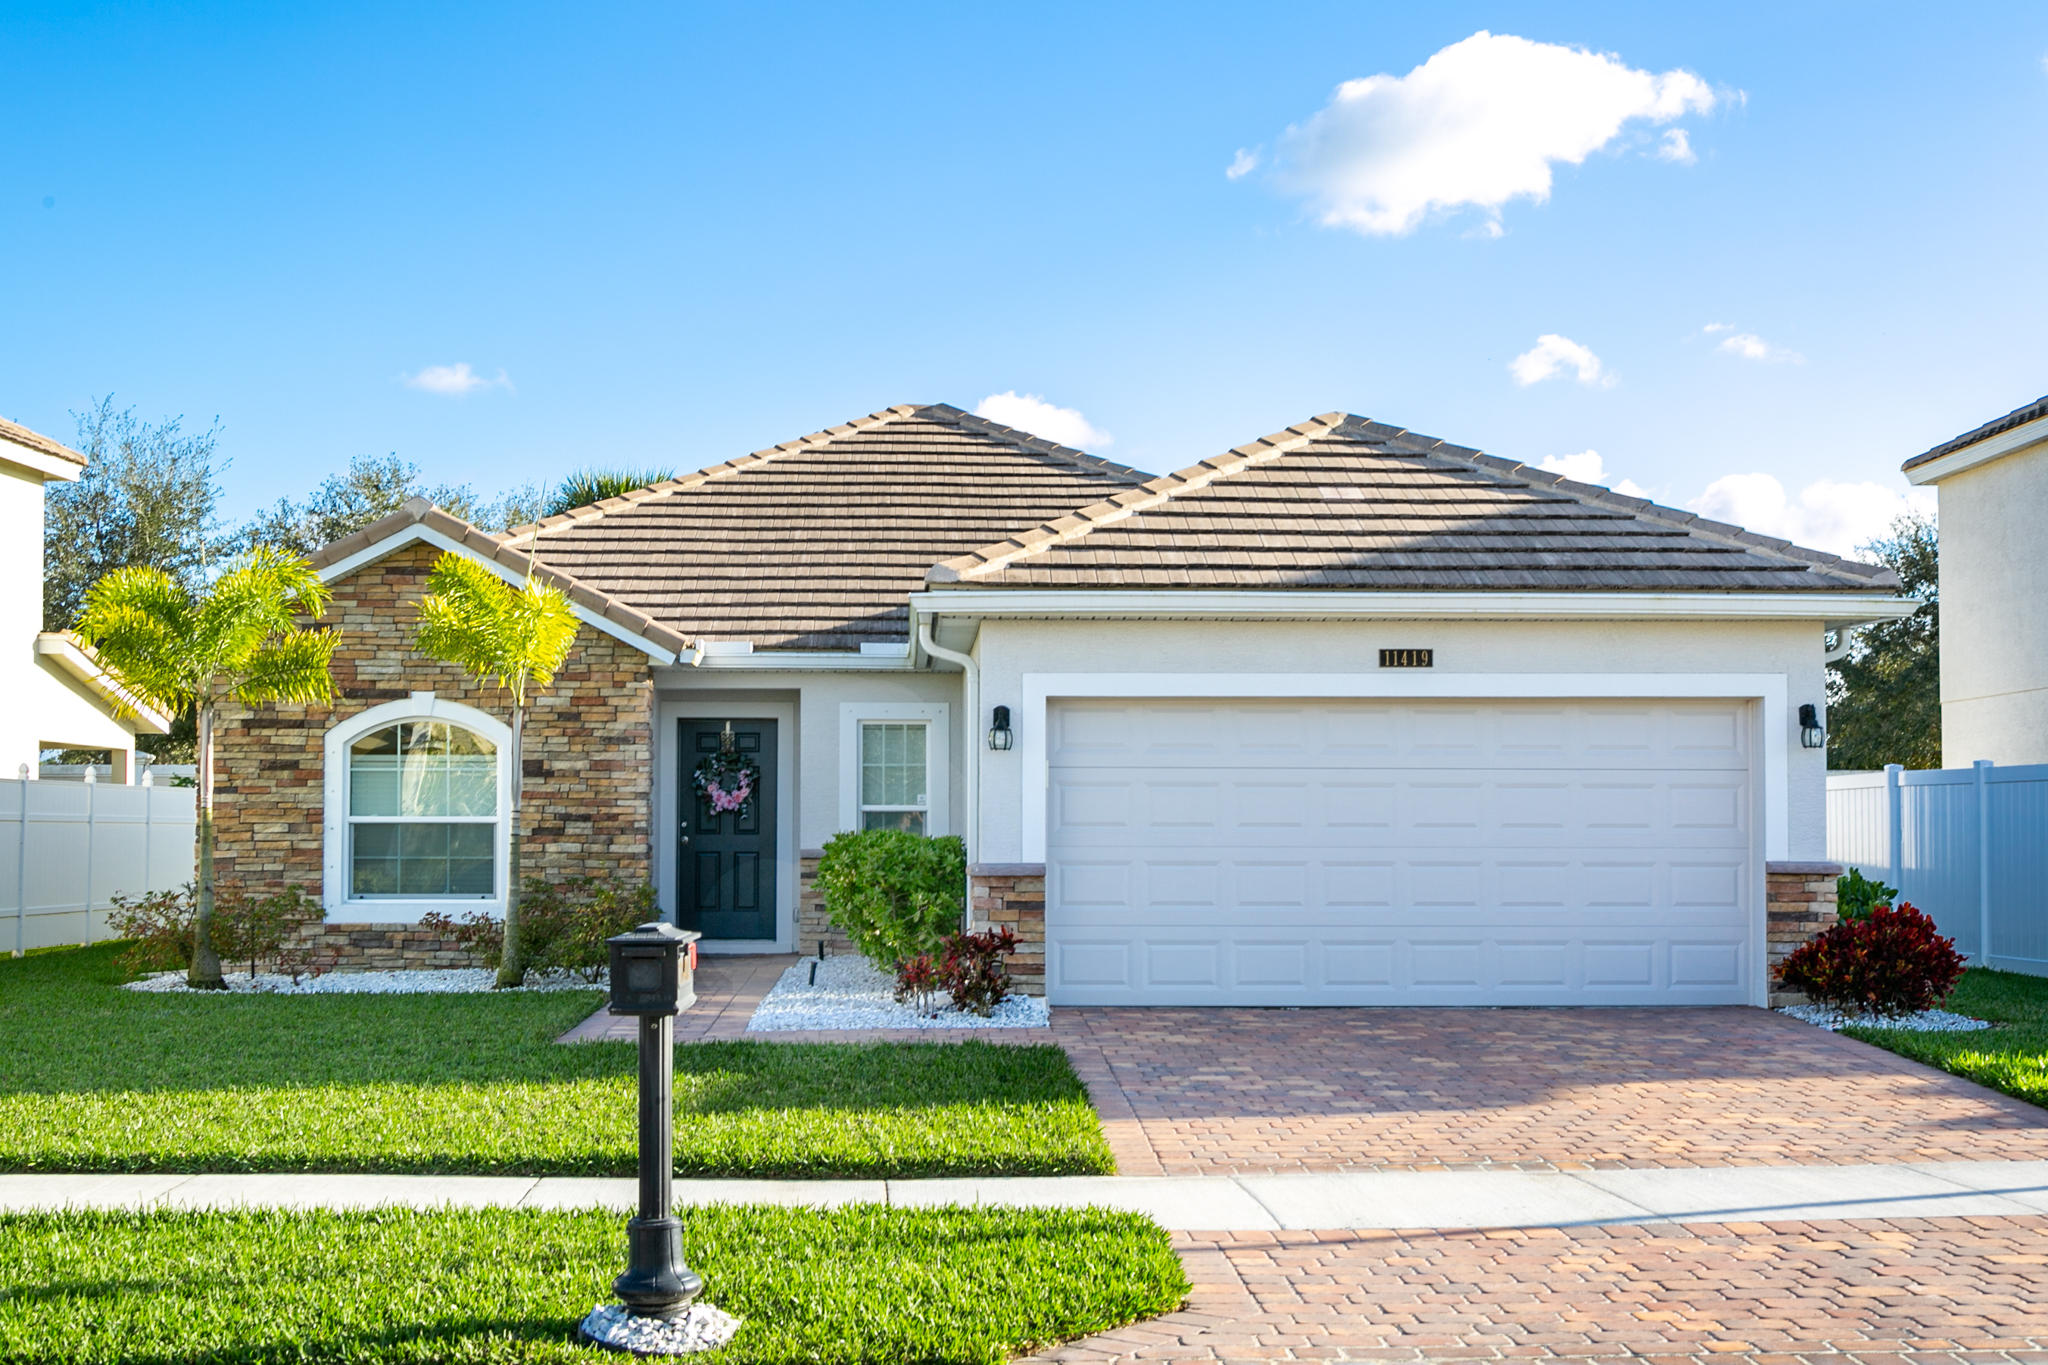 Port Saint Lucie Homes for Sale -  Gated,  11419 SW Glengarry Court